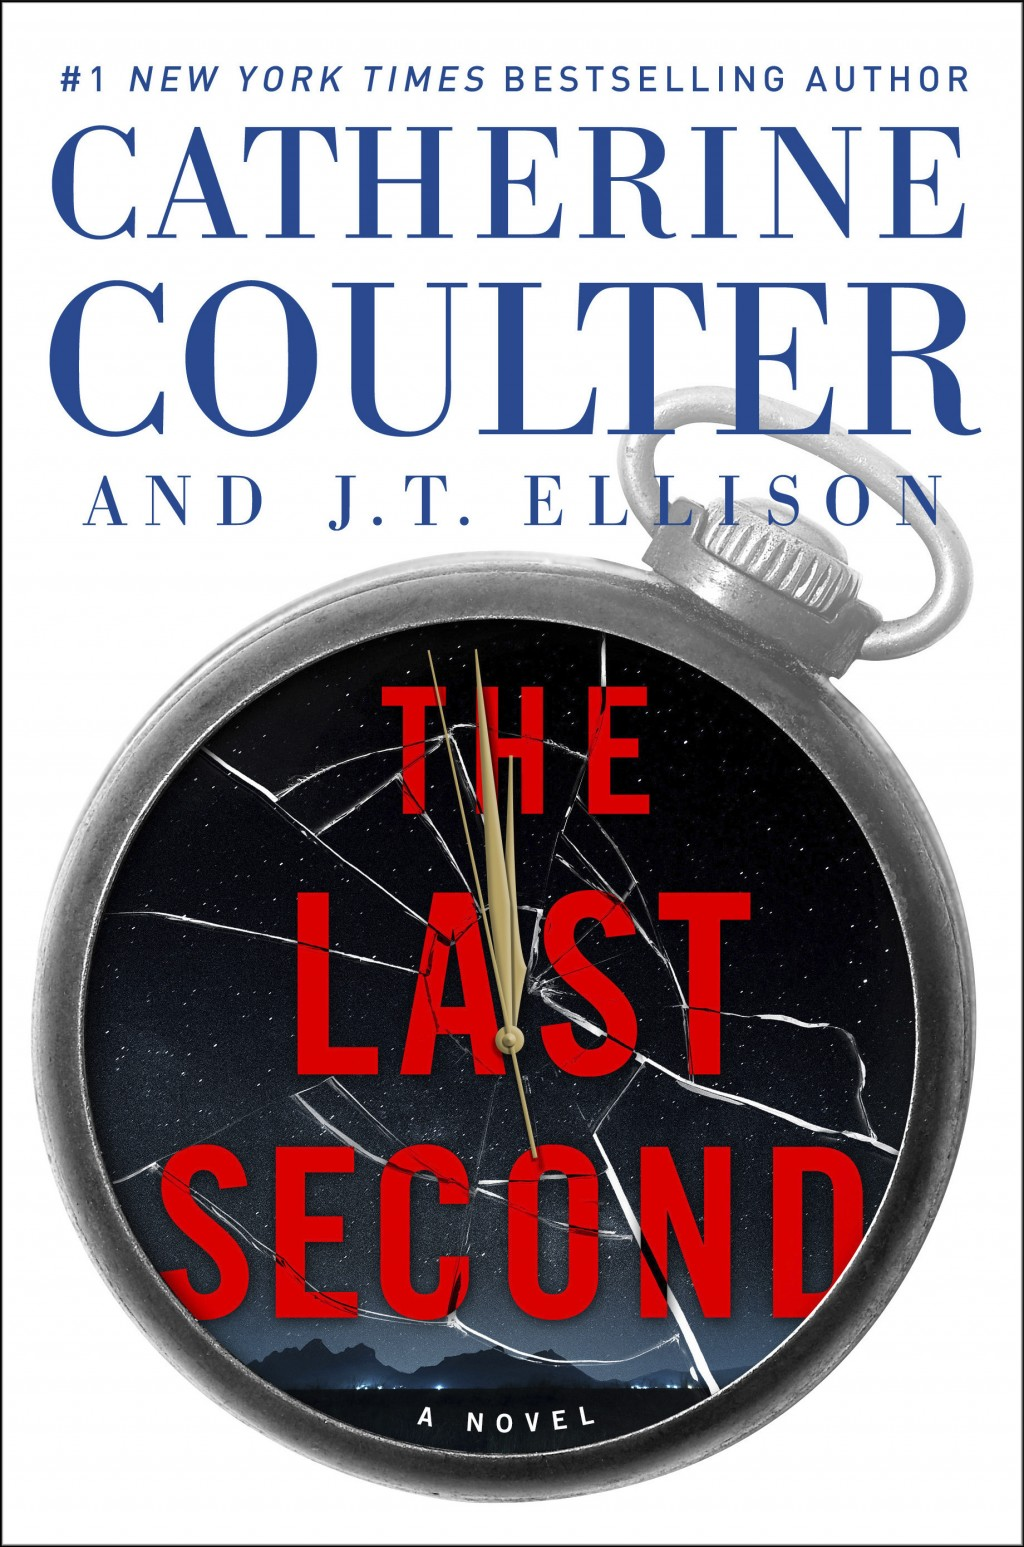 """This cover image released by Gallery Books shows """"The Last Second,"""" a novel by Catherine Coulter and J.T. Ellison. (Gallery Books via AP)"""